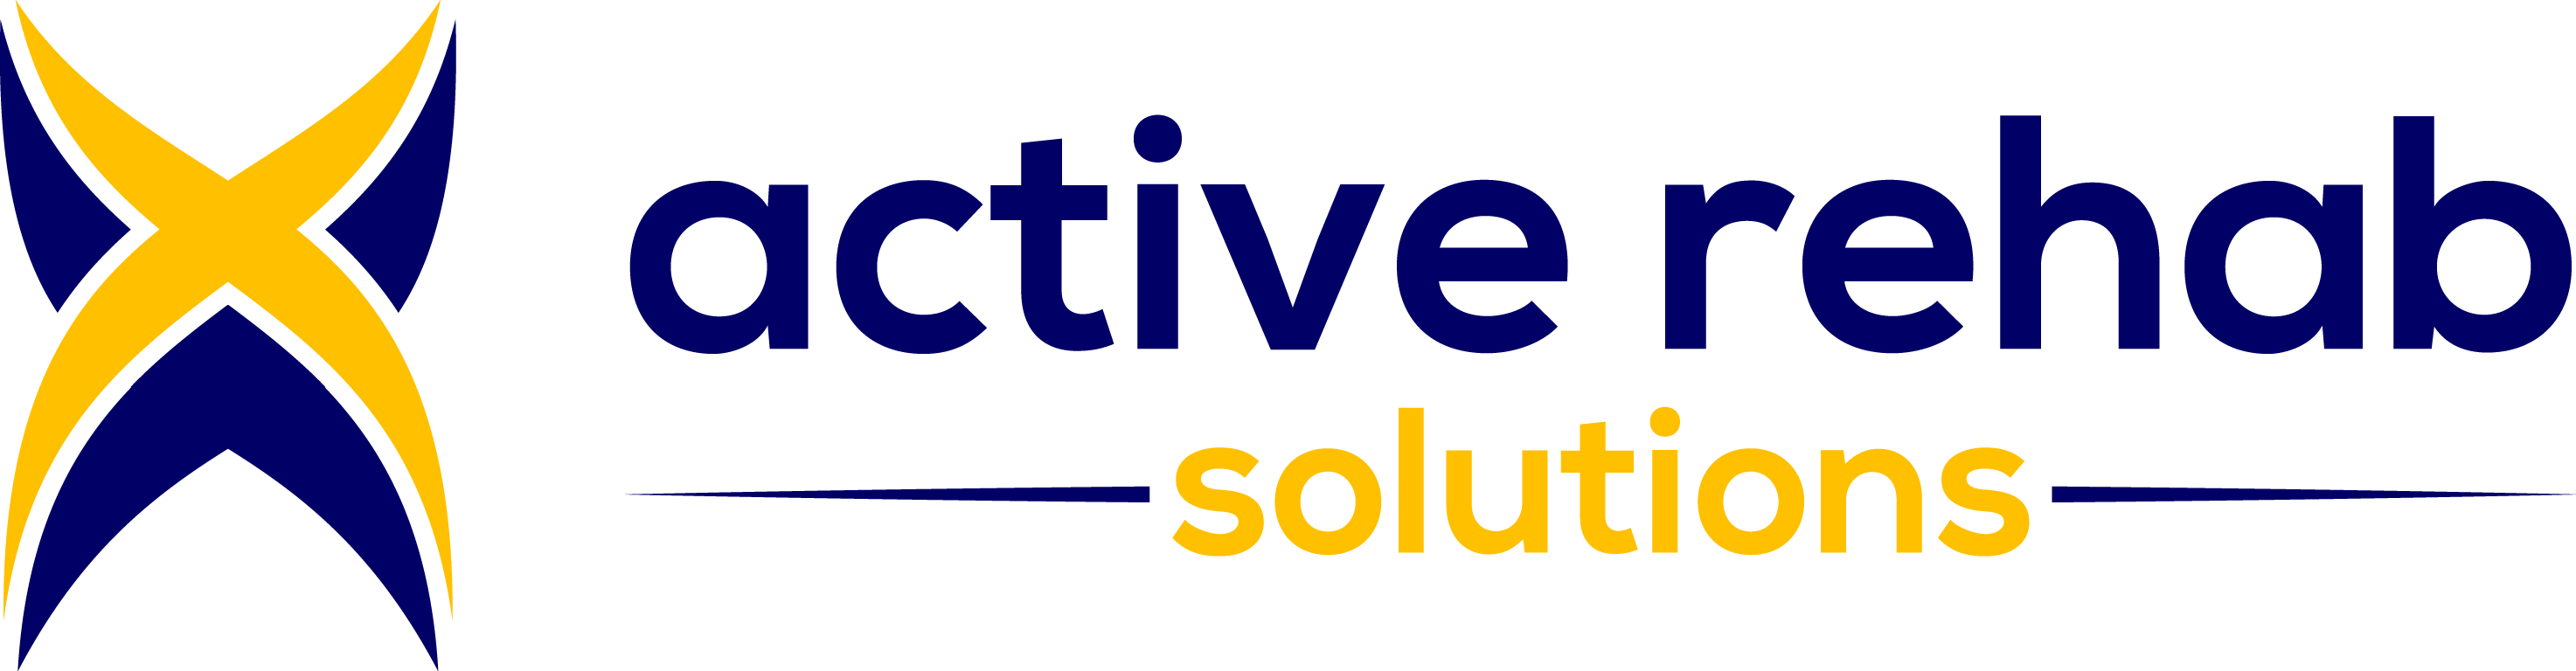 active rehab solutions logo